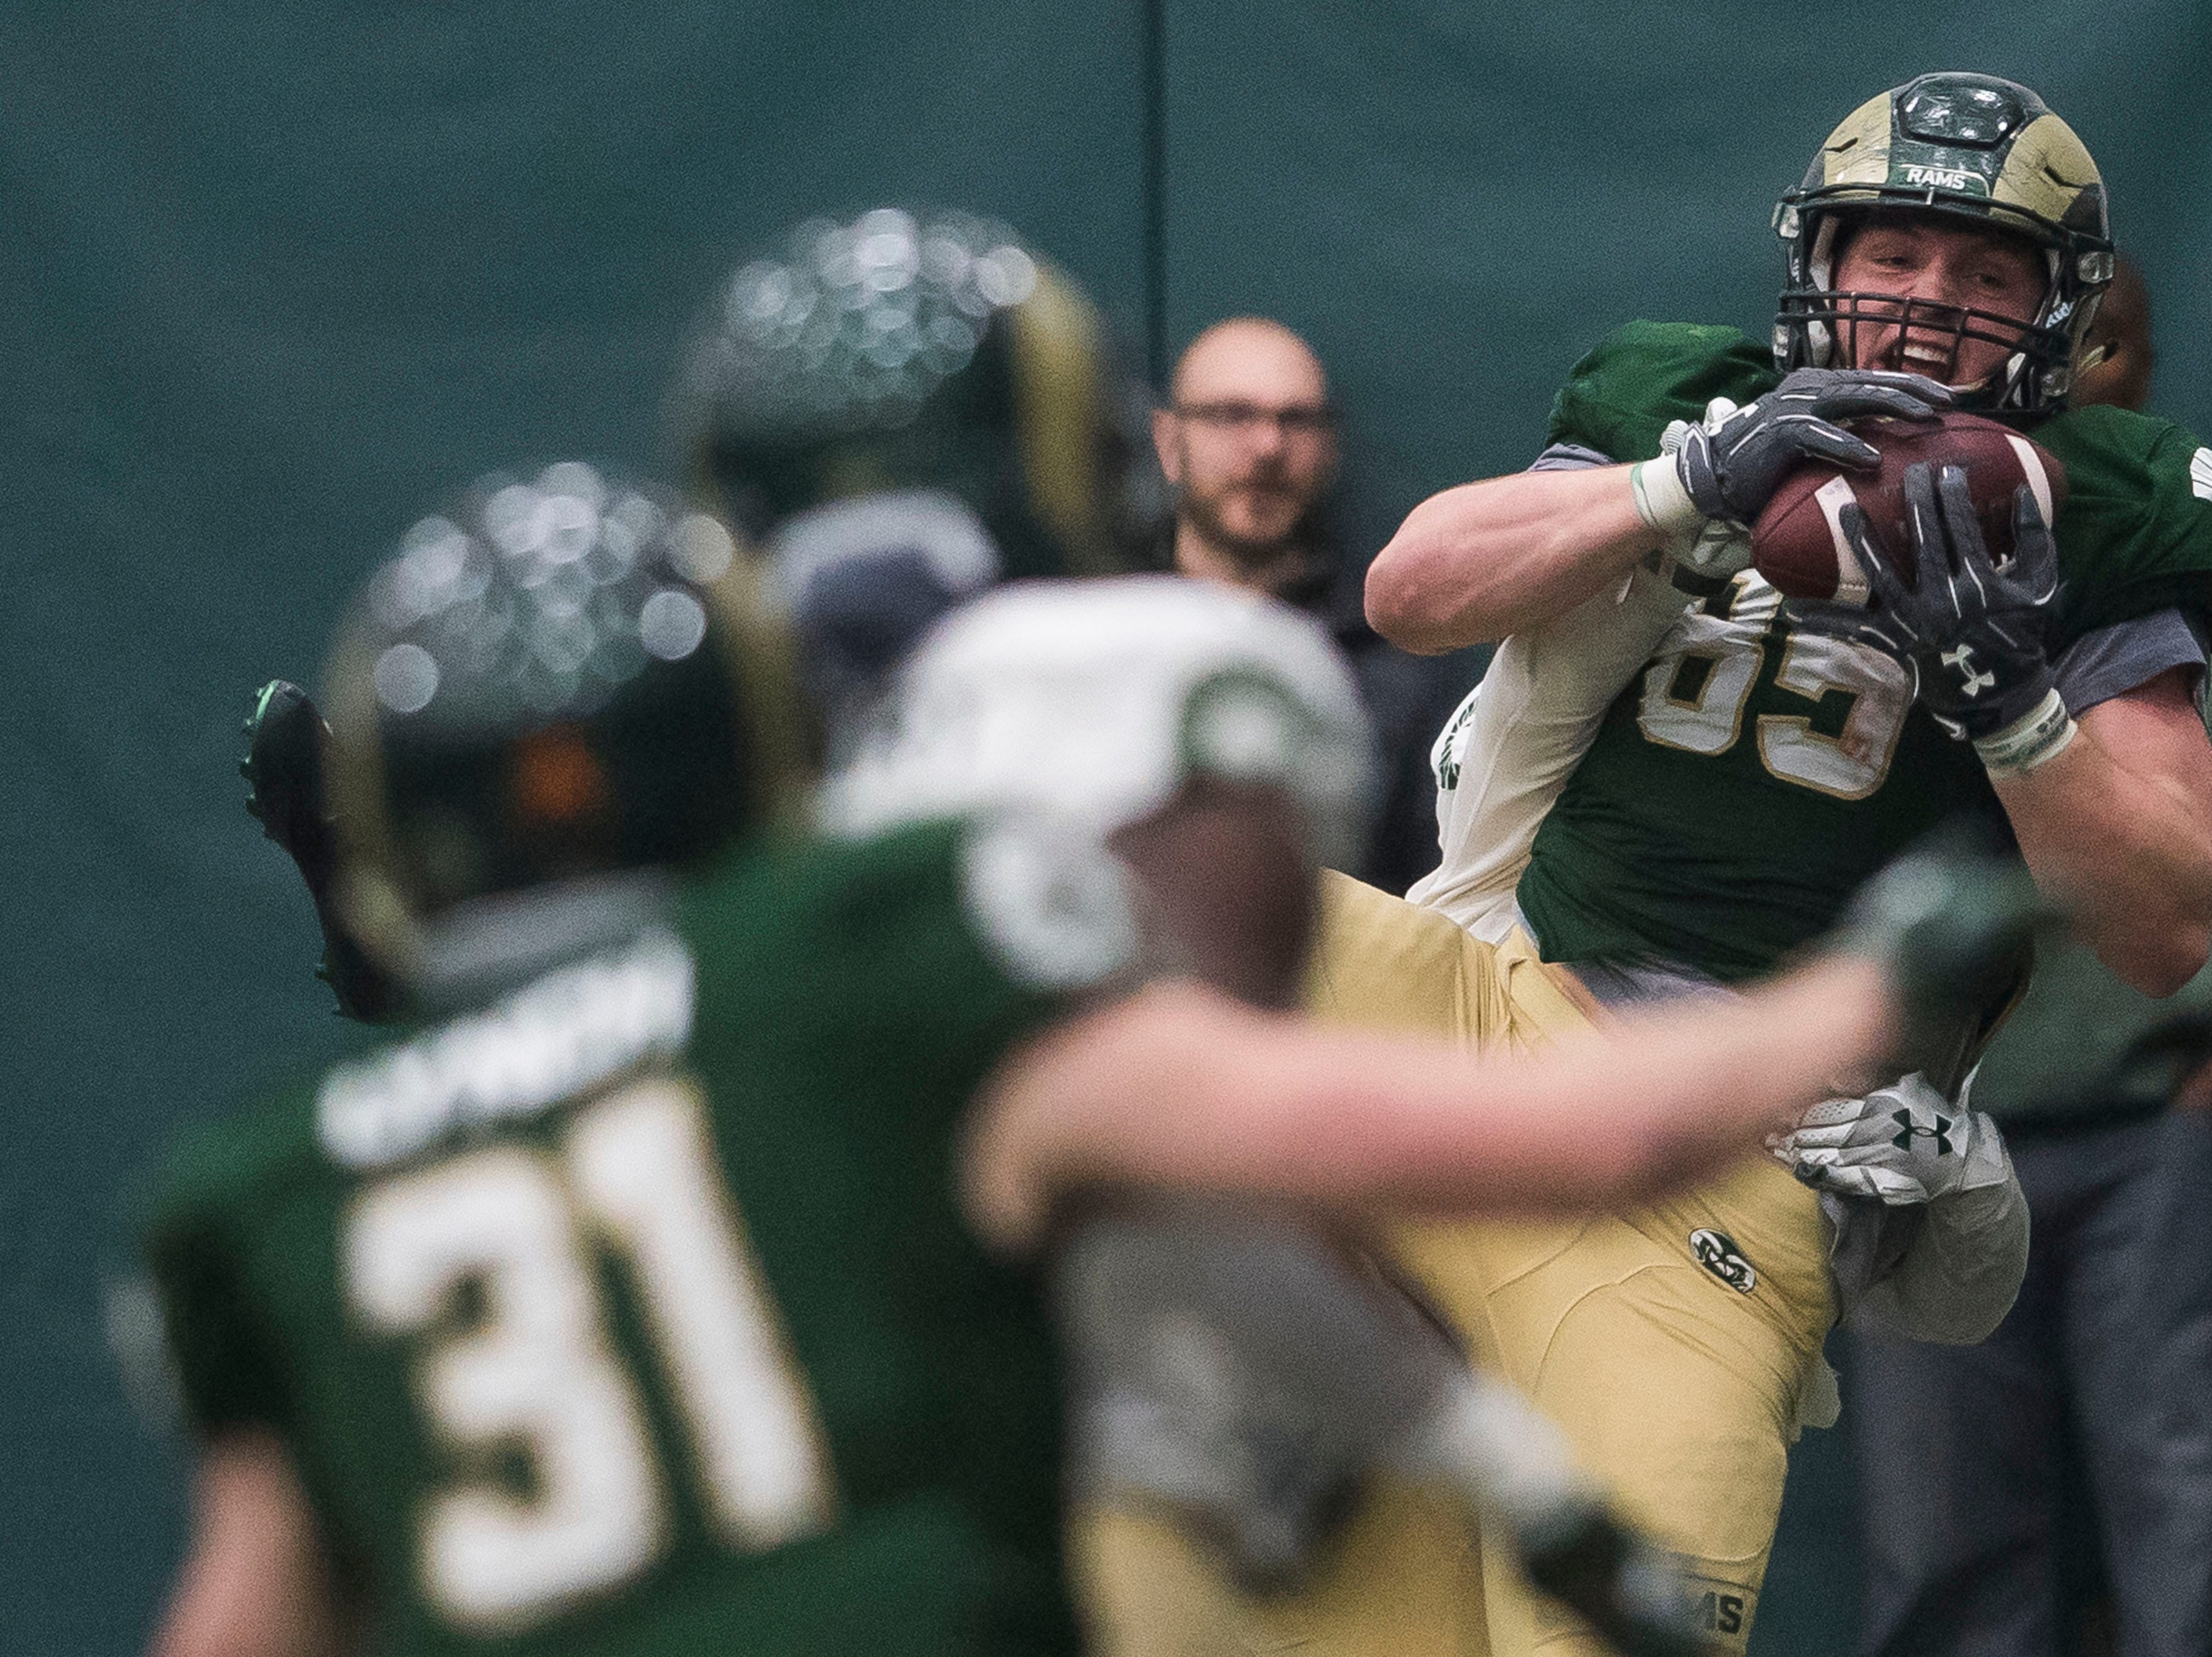 CSU sophomore tight end Trey McBride (85) pulls in a touchdown reception while sophomore cornerback Adonis Rufran (38) tackles him during CSU's Spring game on Thursday, March 14, 2019, at their indoor practice facility in Fort Collins, Colo.